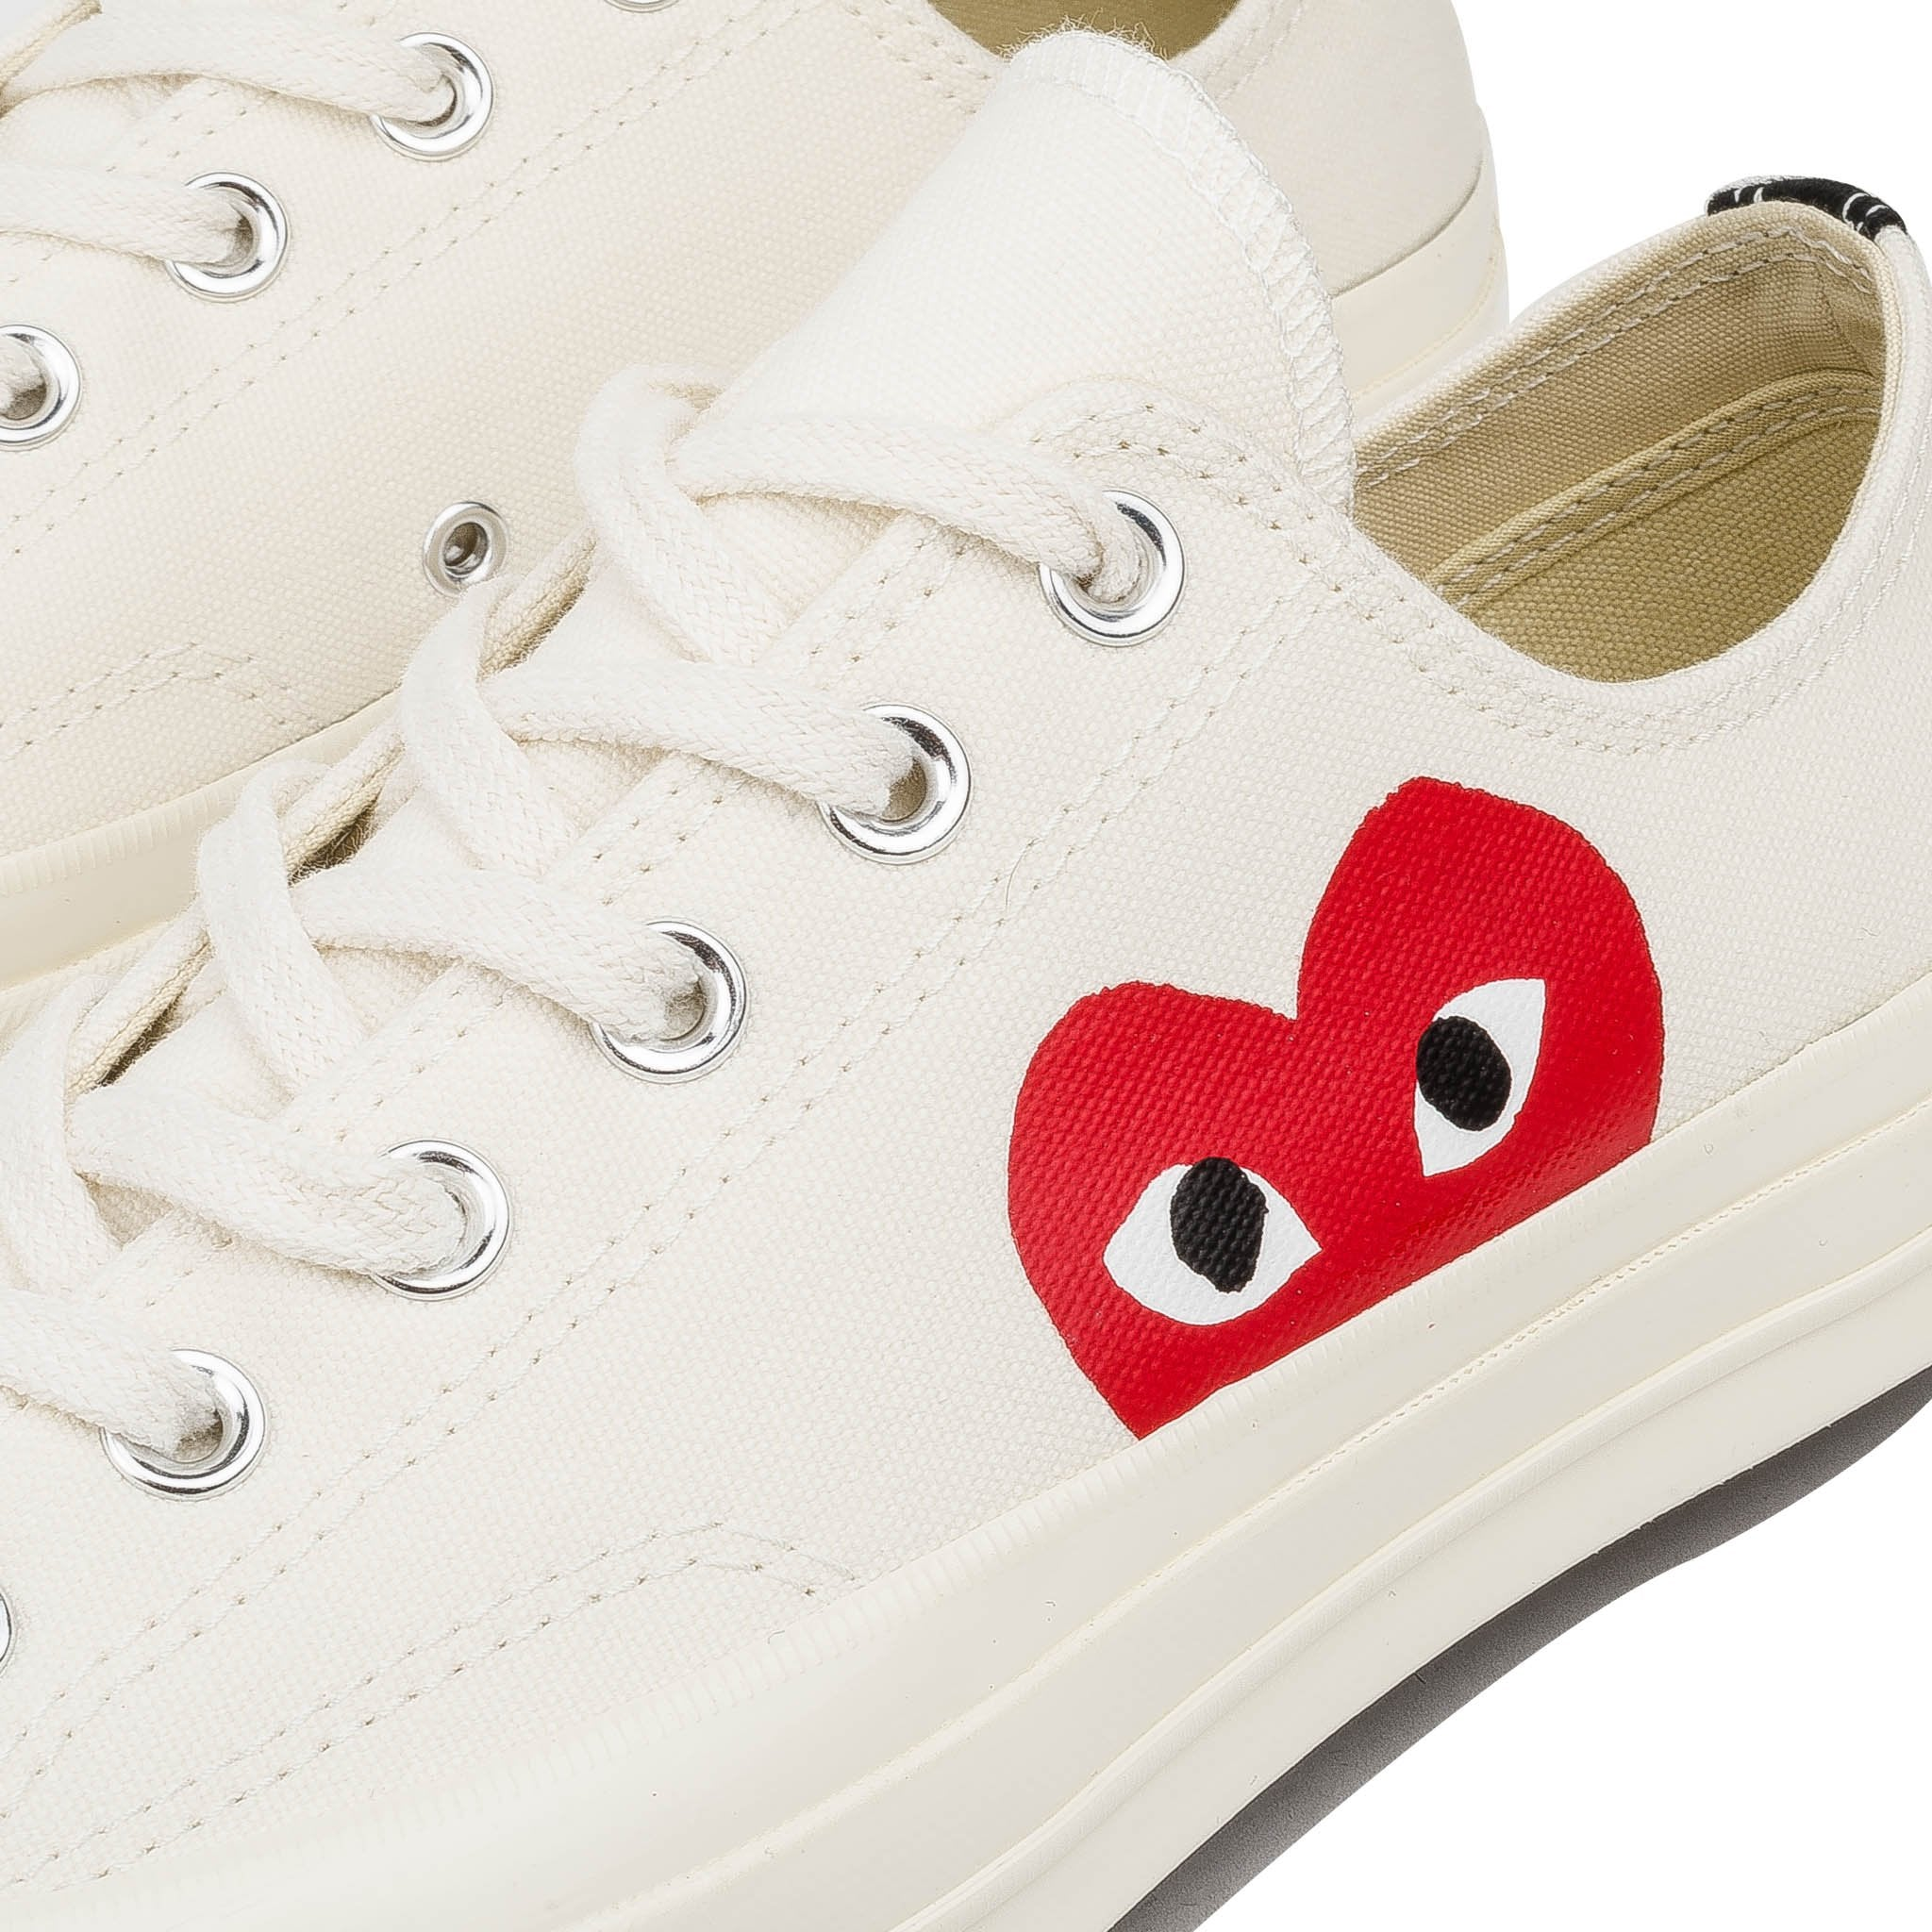 CT 70 CDG Play OX 150207C White